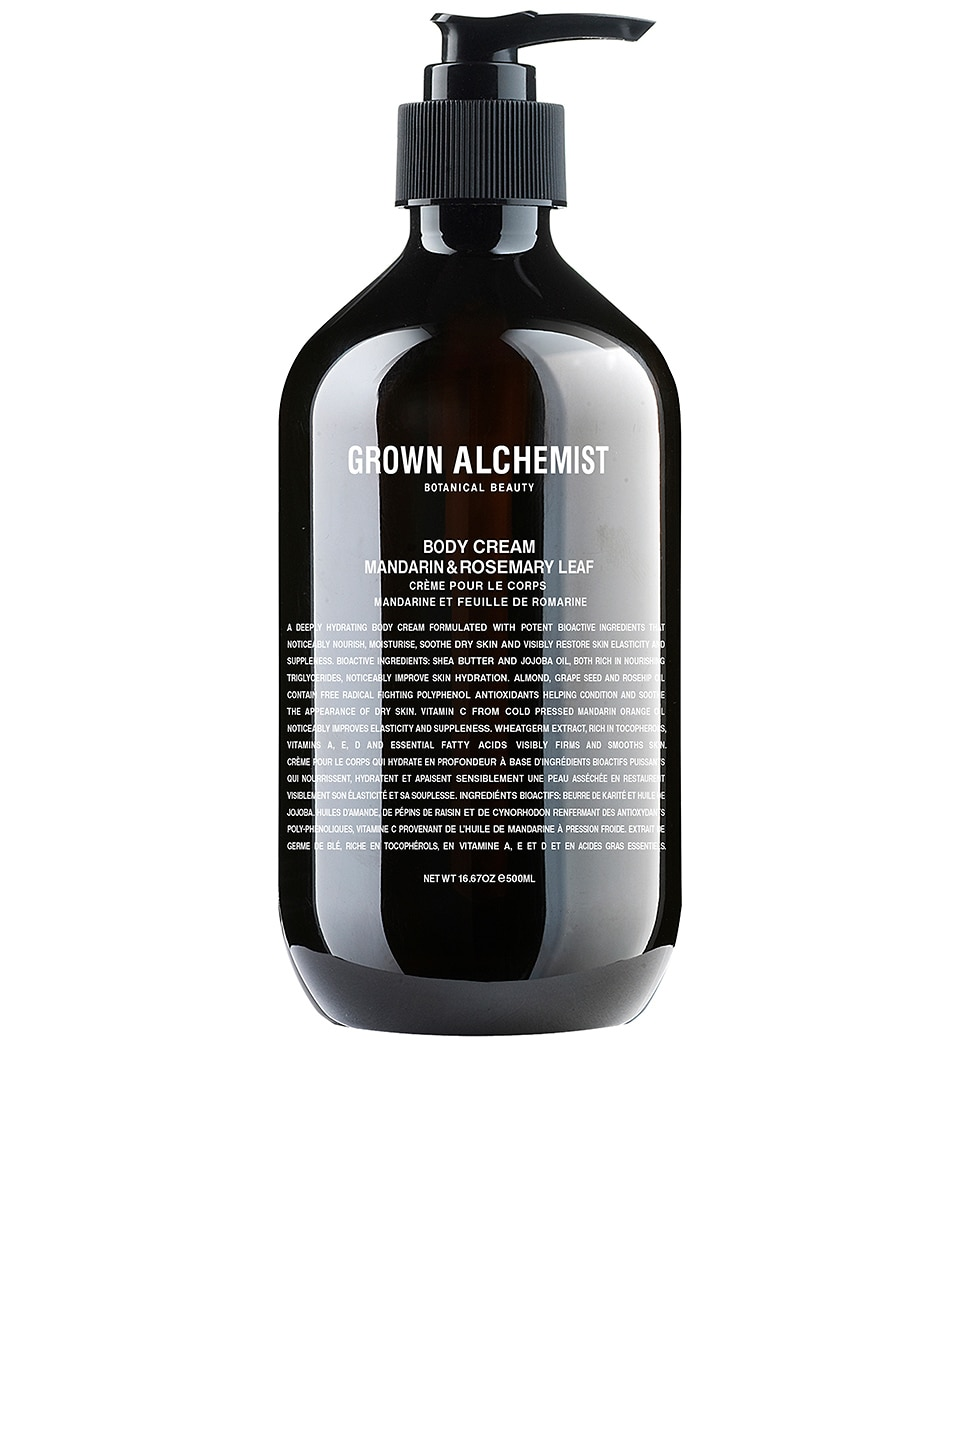 Grown Alchemist Body Cream in Mandarin & Rosemary Leaf